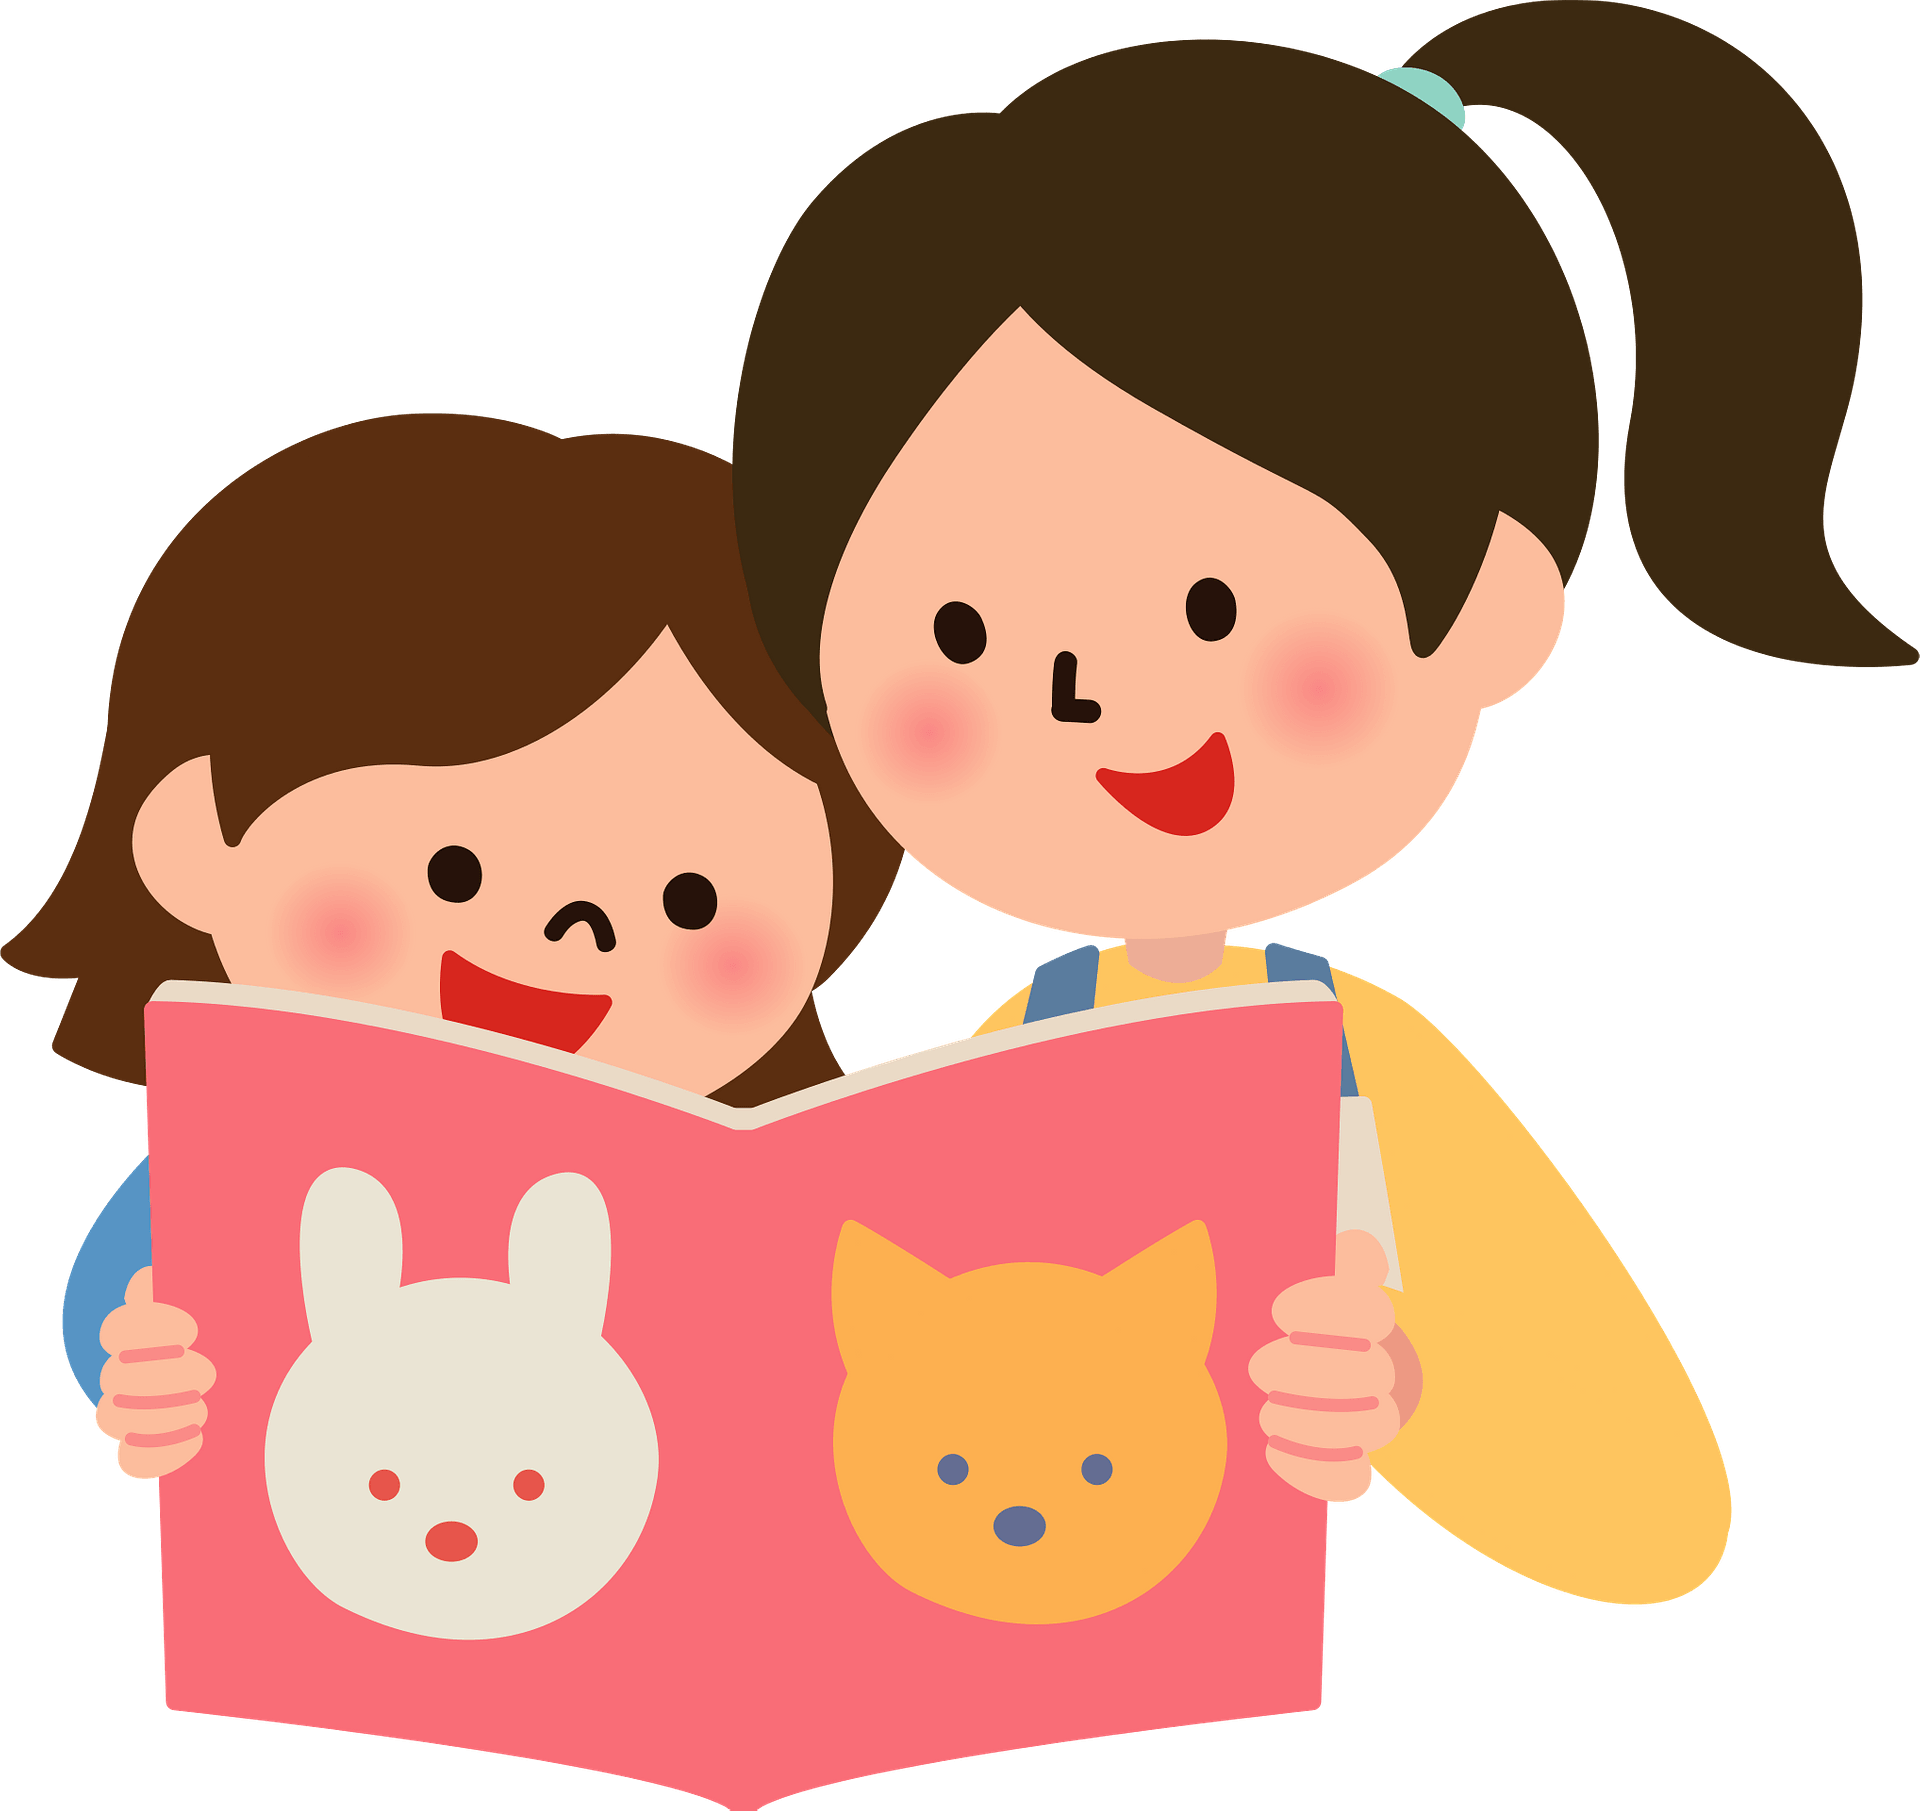 Amazing Child Care Clipart Art Child Care - Nsw Family Day Care - Free  Transparent PNG Clipart Images Download